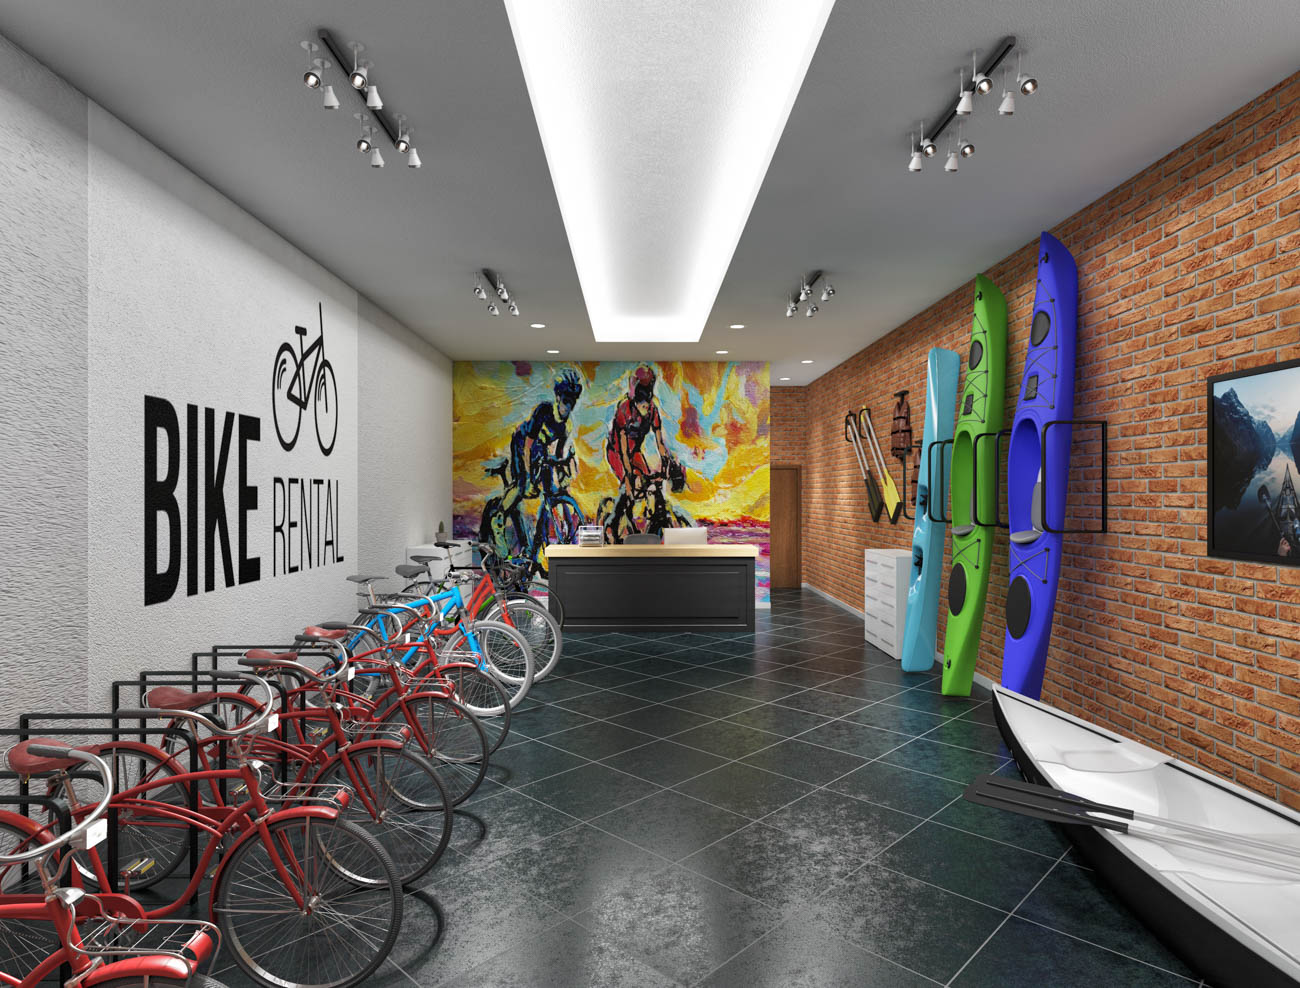 A rendering of a canoe and bike rental business / Image courtesy of Oval Room Group // Published: 9.17.19